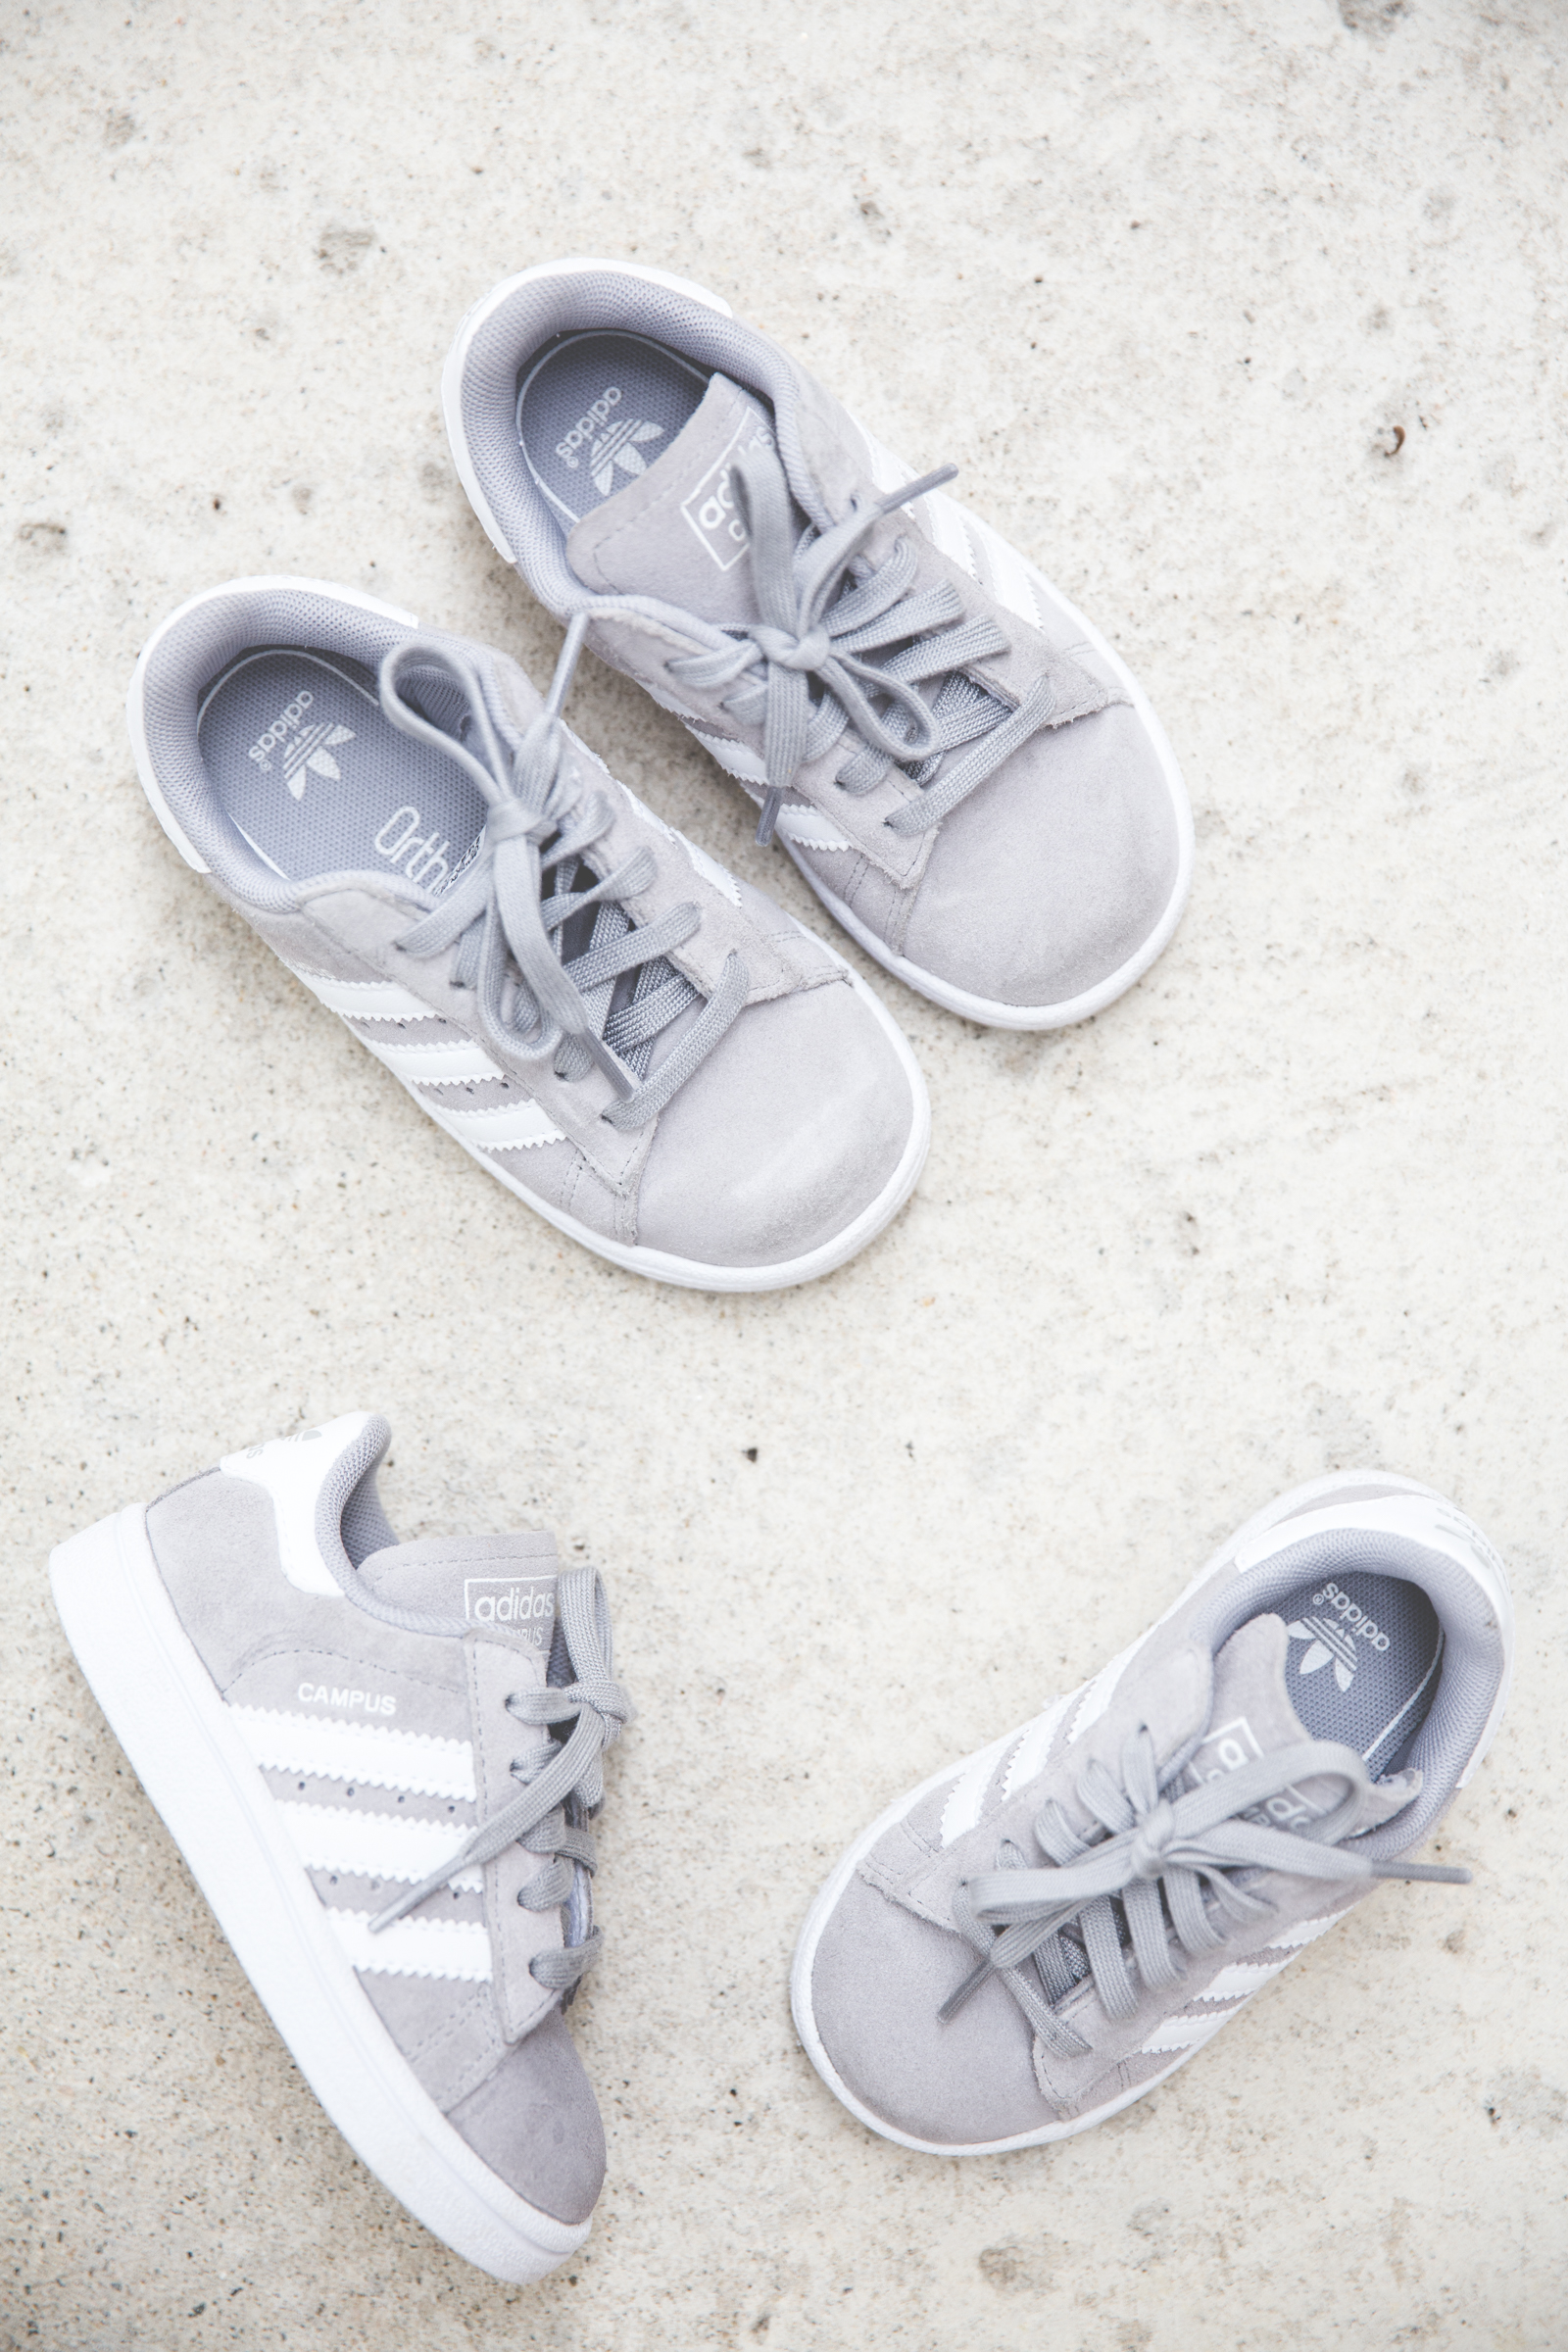 adidas campus kicks for kids-2960